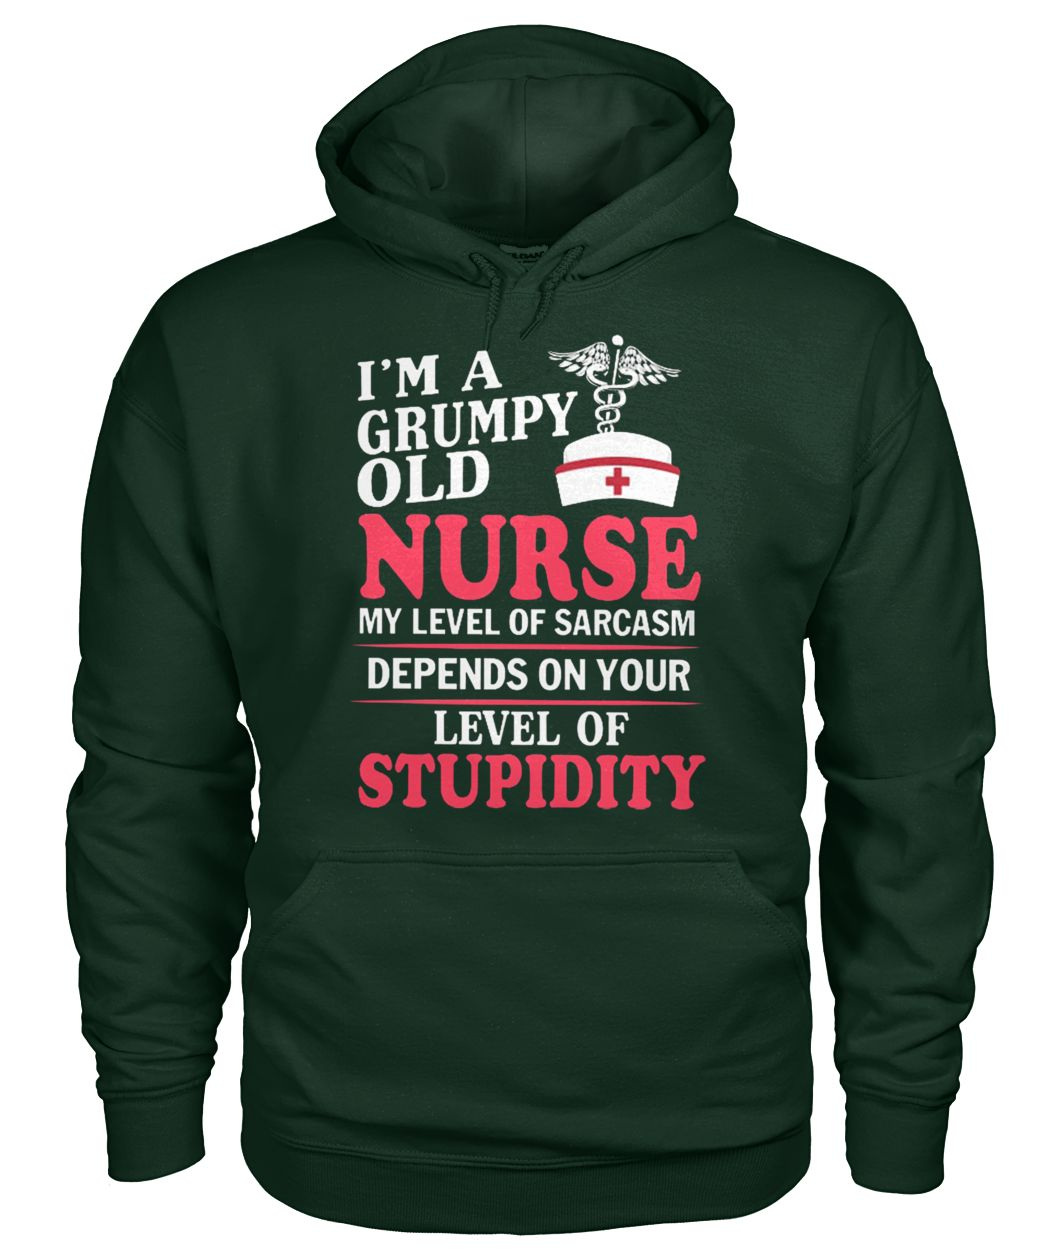 I'm a grumpy old nurse my level of sarcasm depends on your level of stupidity gildan hoodie